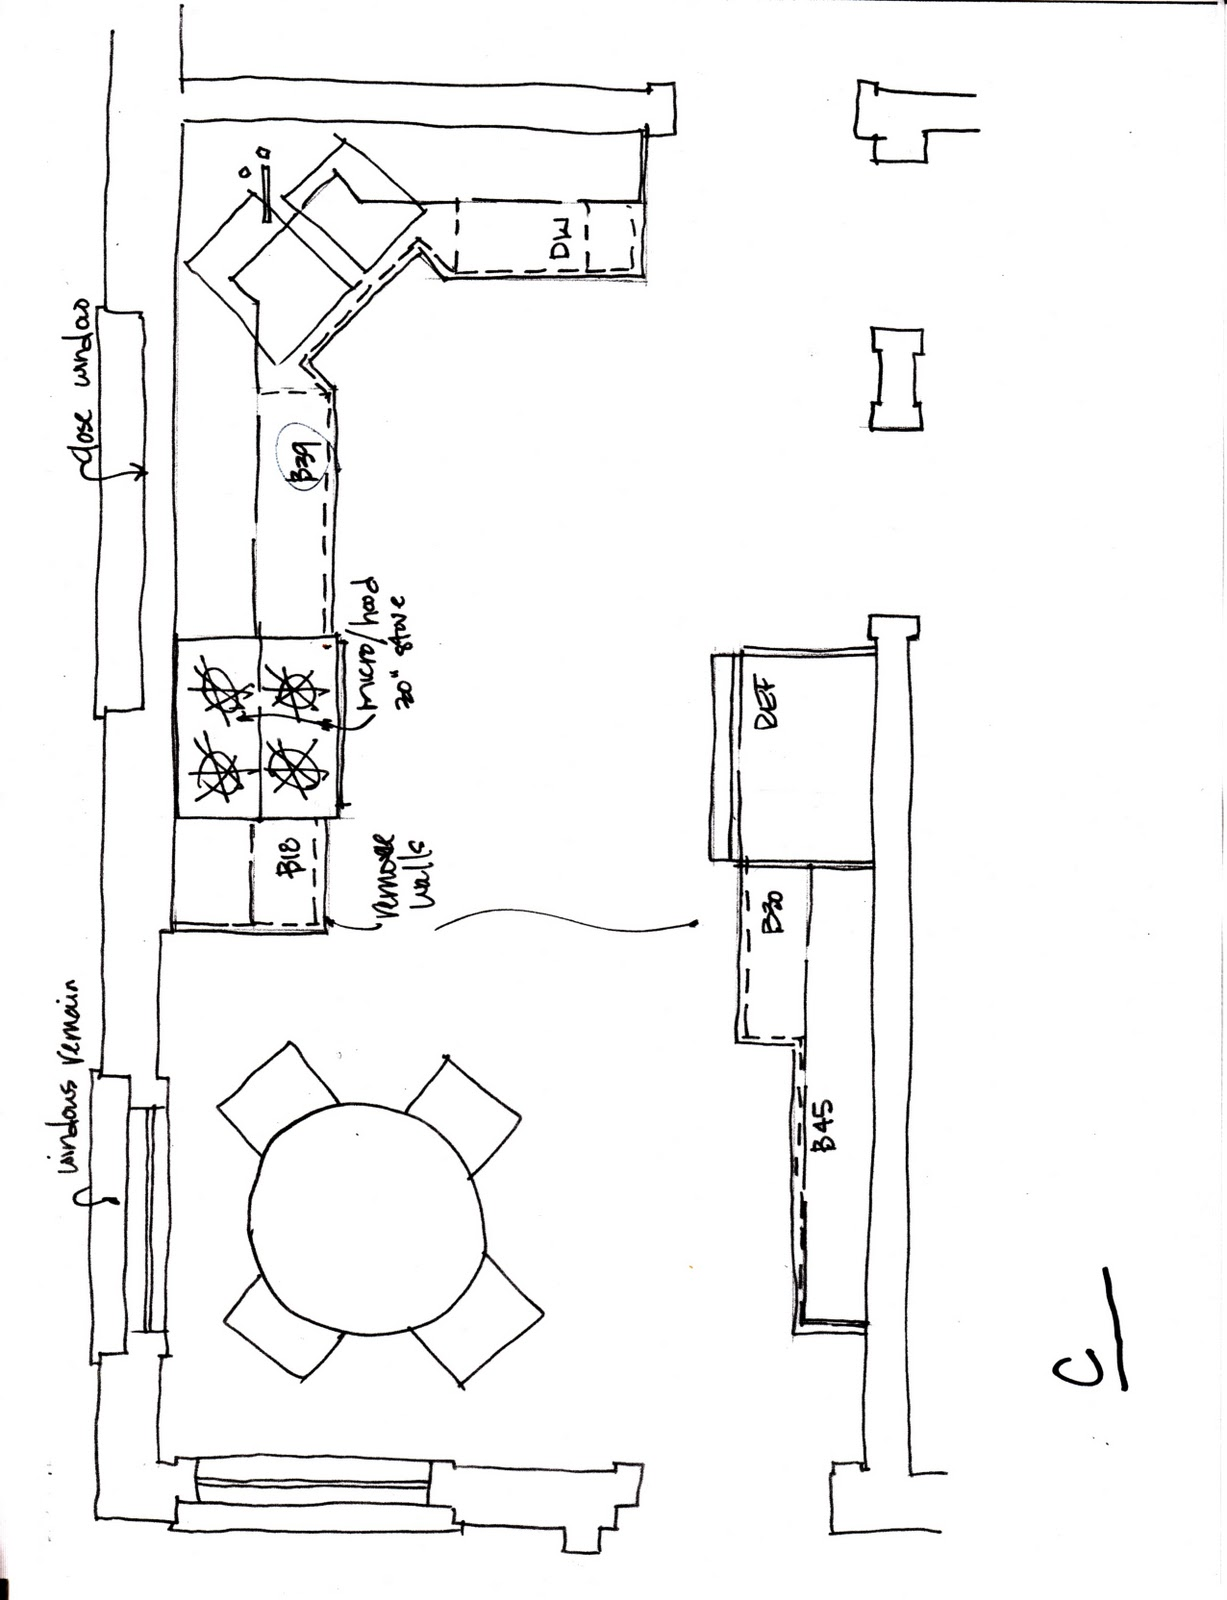 Small kitchen layouts plans afreakatheart for Small kitchen design plans